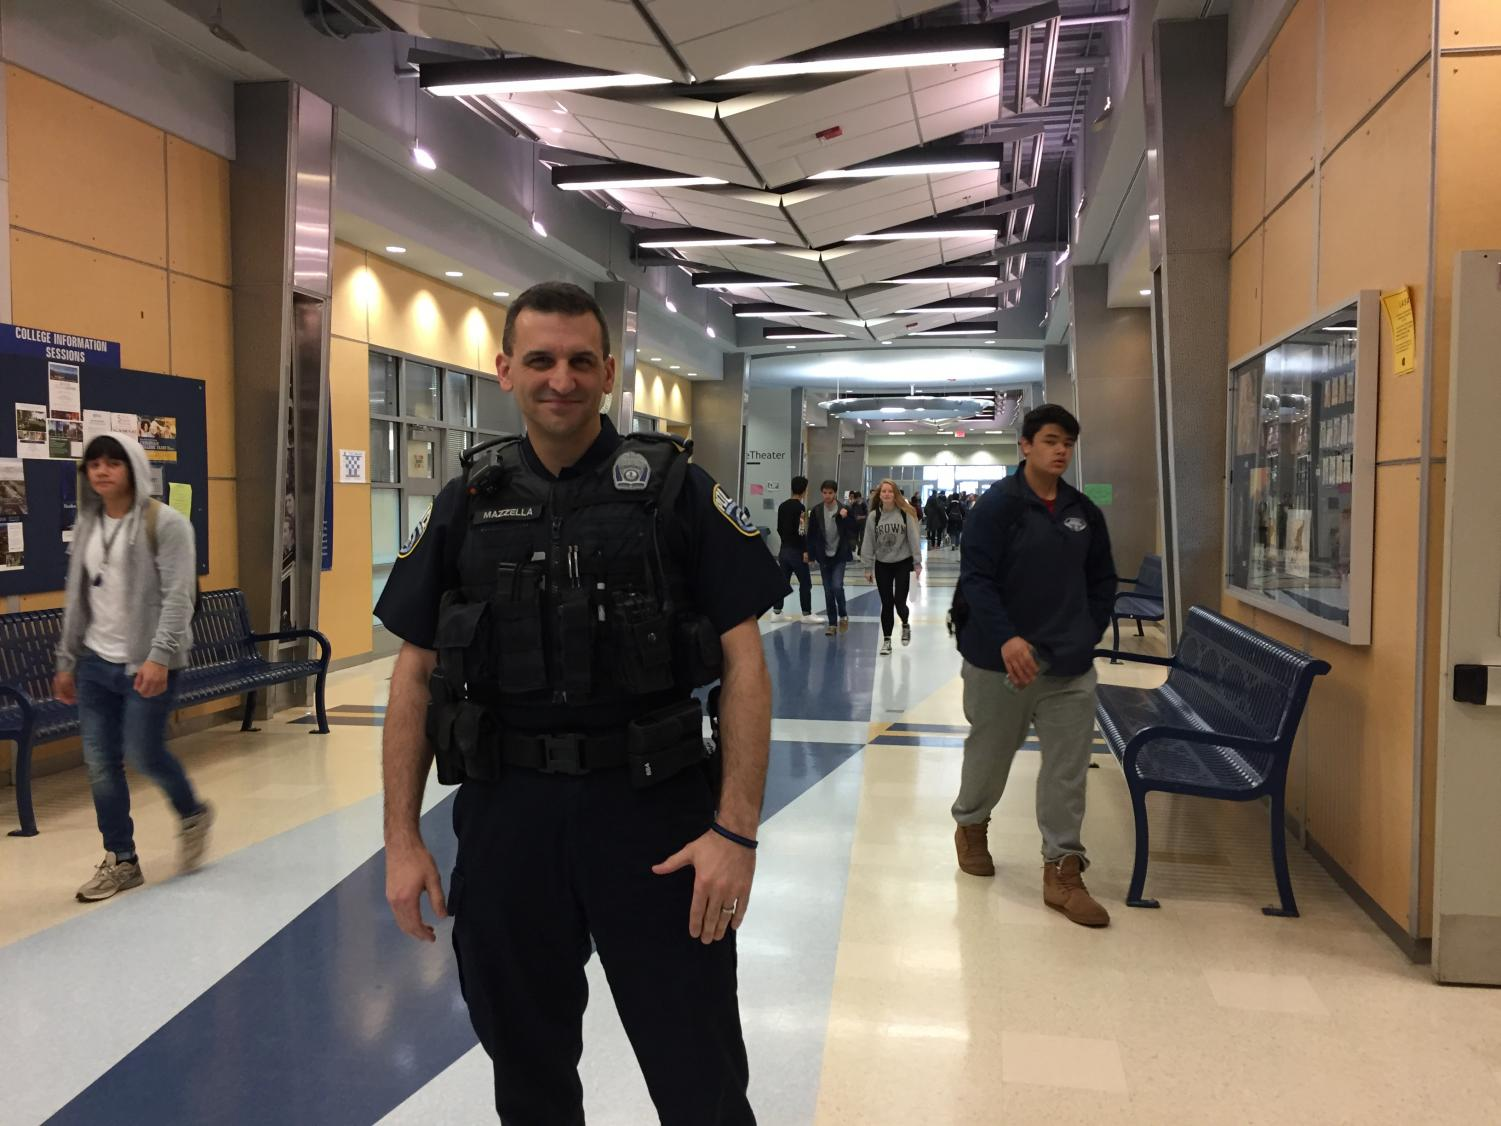 School SRO Marc Mazzella stands in the hallway between classes. Much of the responsibility of handling student crime is given to the SROs.